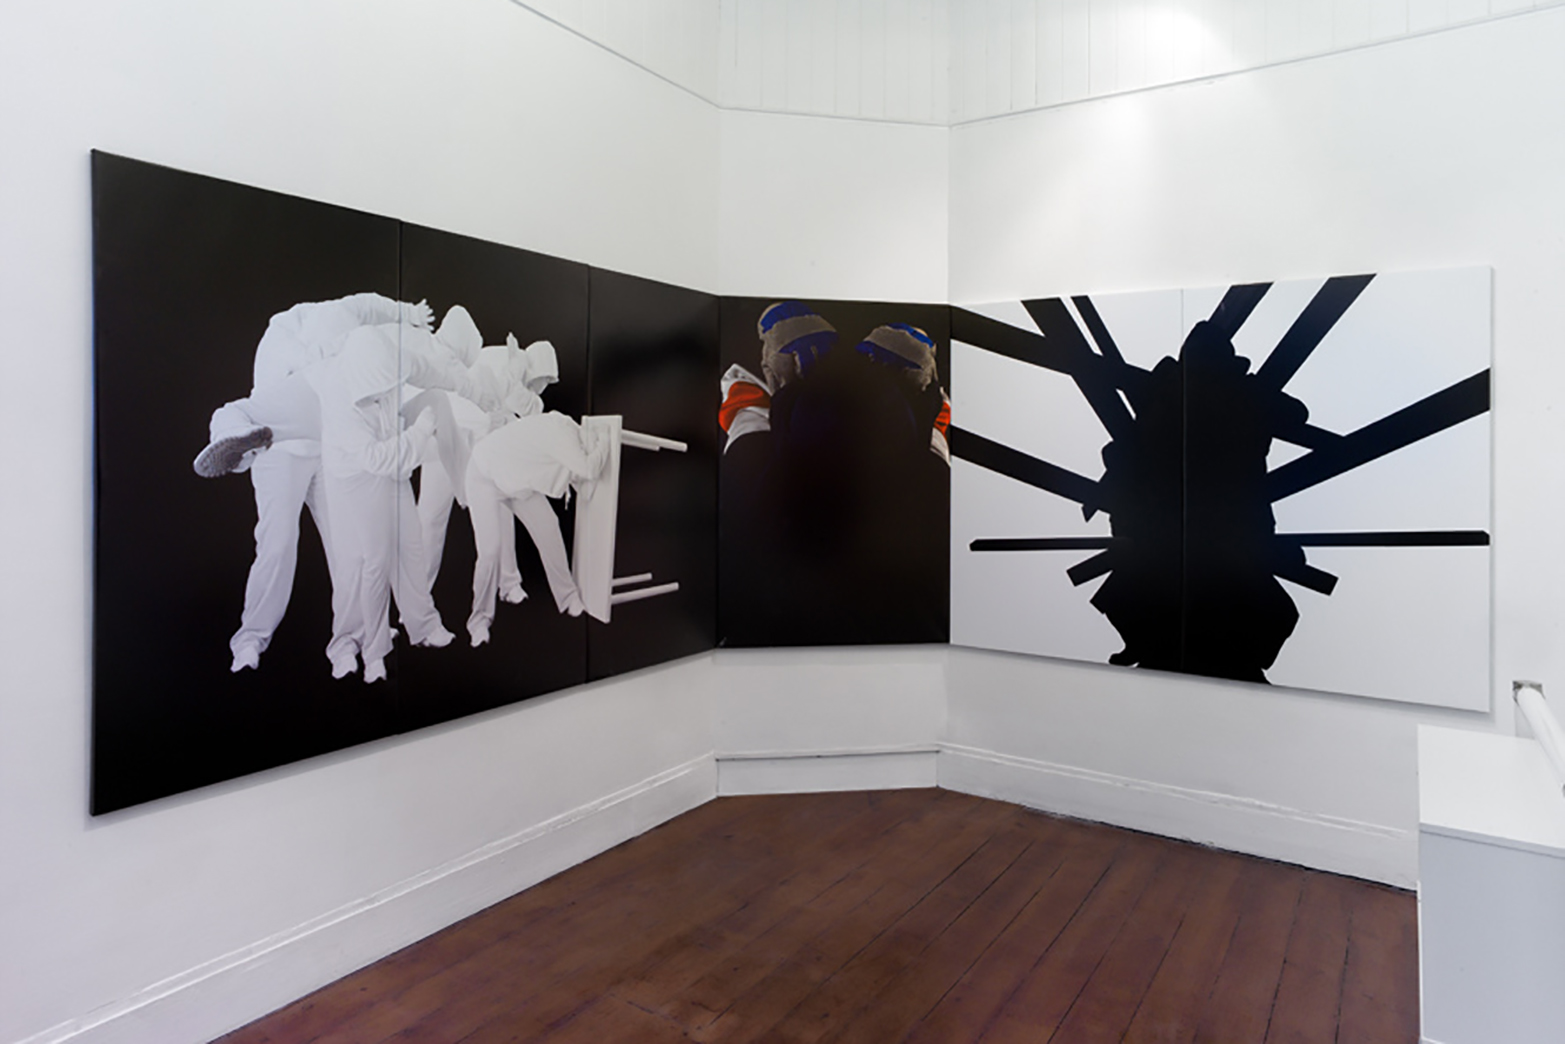 Tina Hage, Gestalt (statur #203), Gestalt (build #101)  and Gestalt (guise #023), 2011